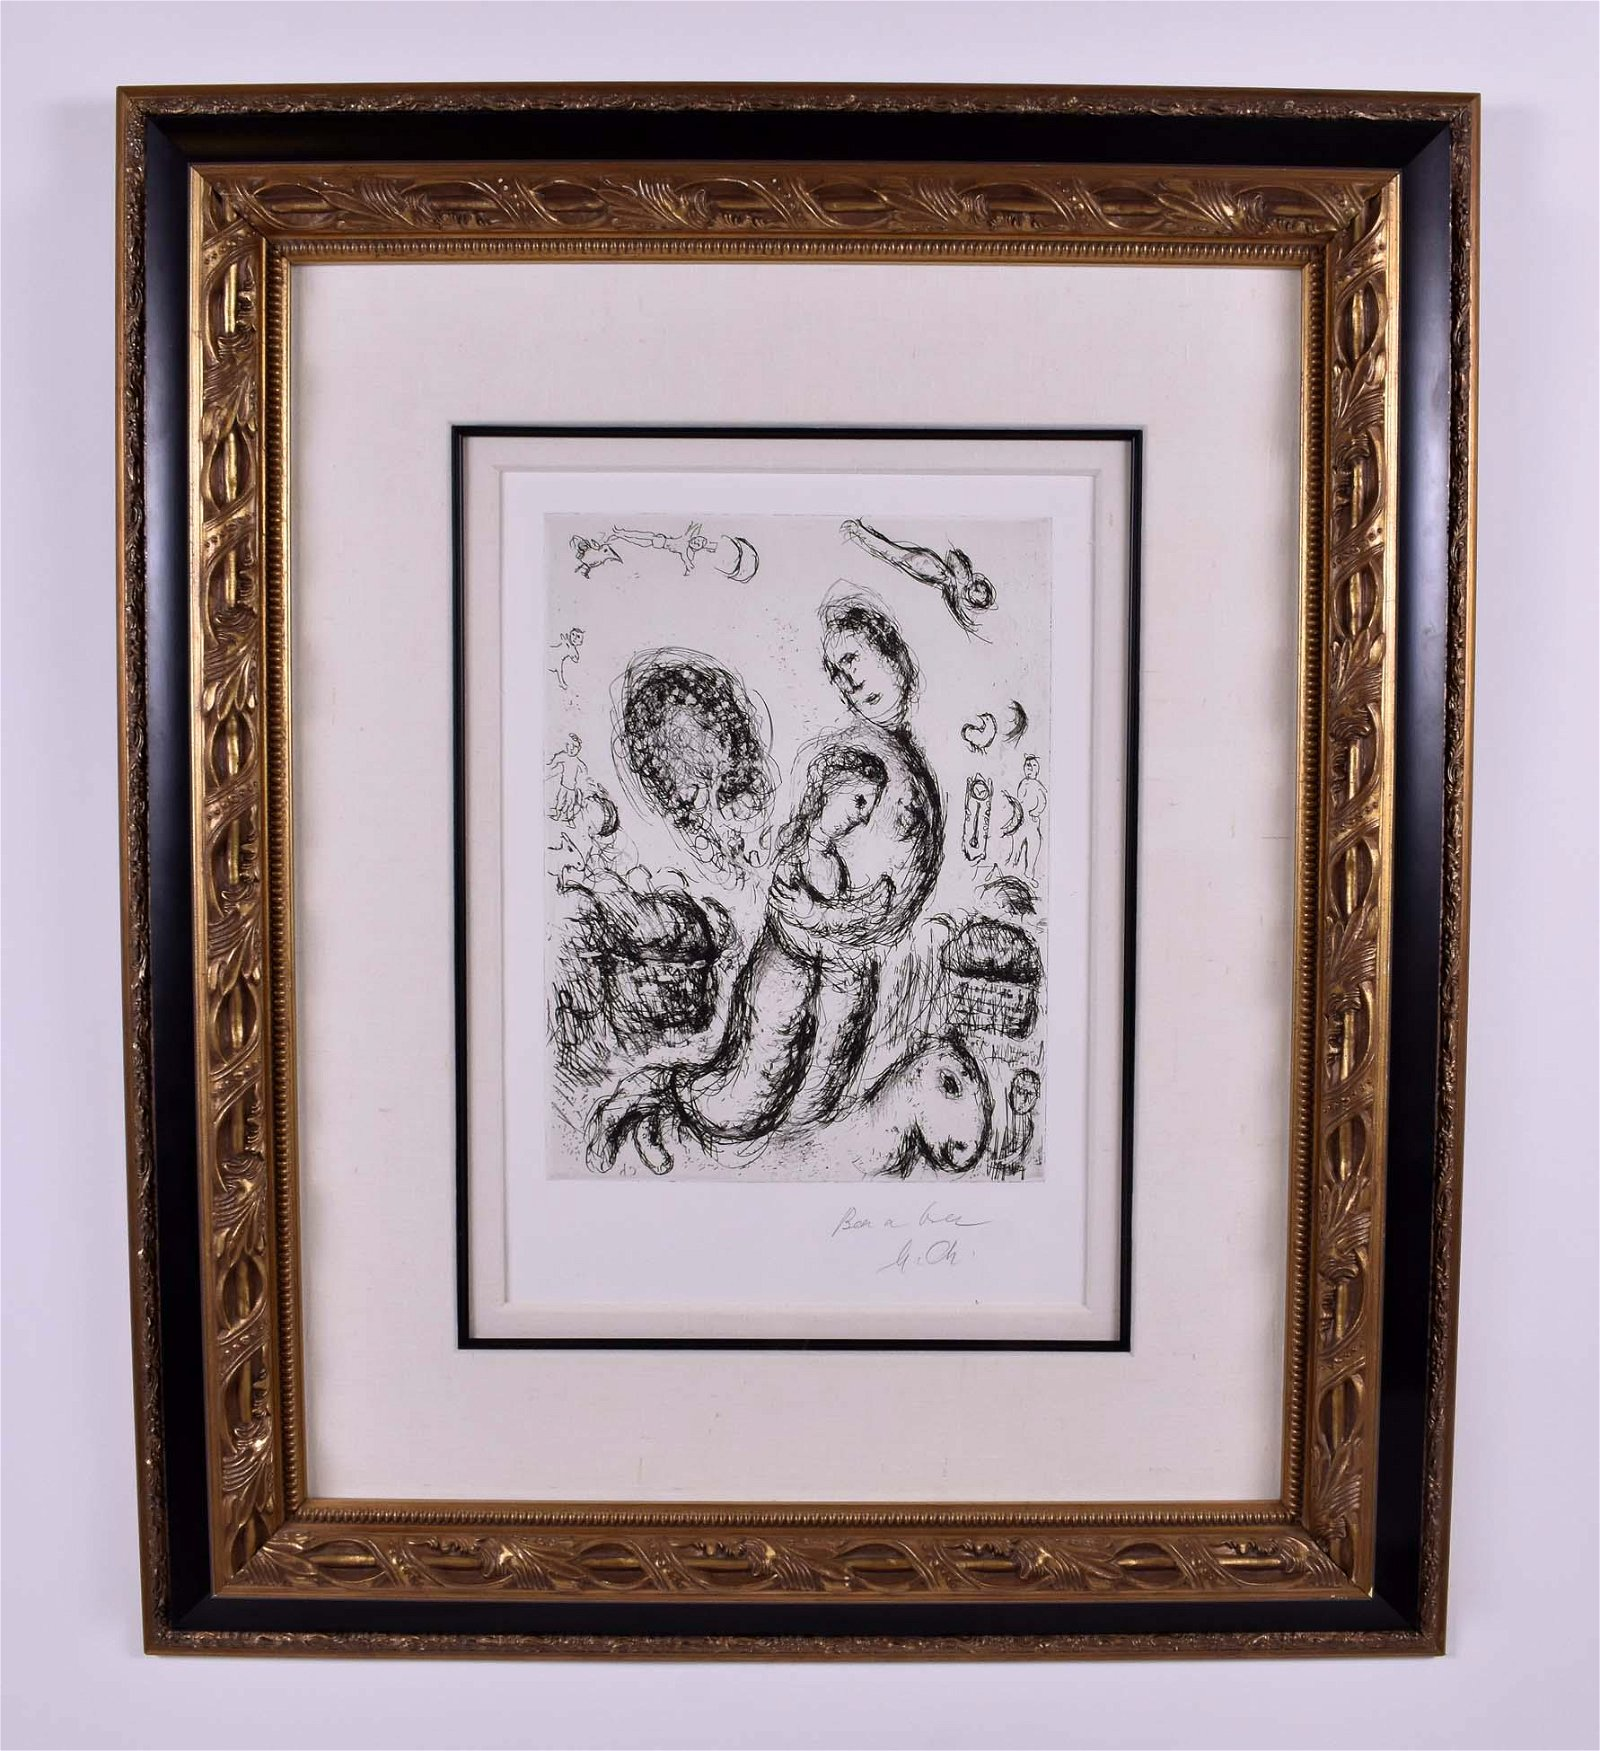 MARC CHAGALL (1887-1985) OFFSET ETCHING